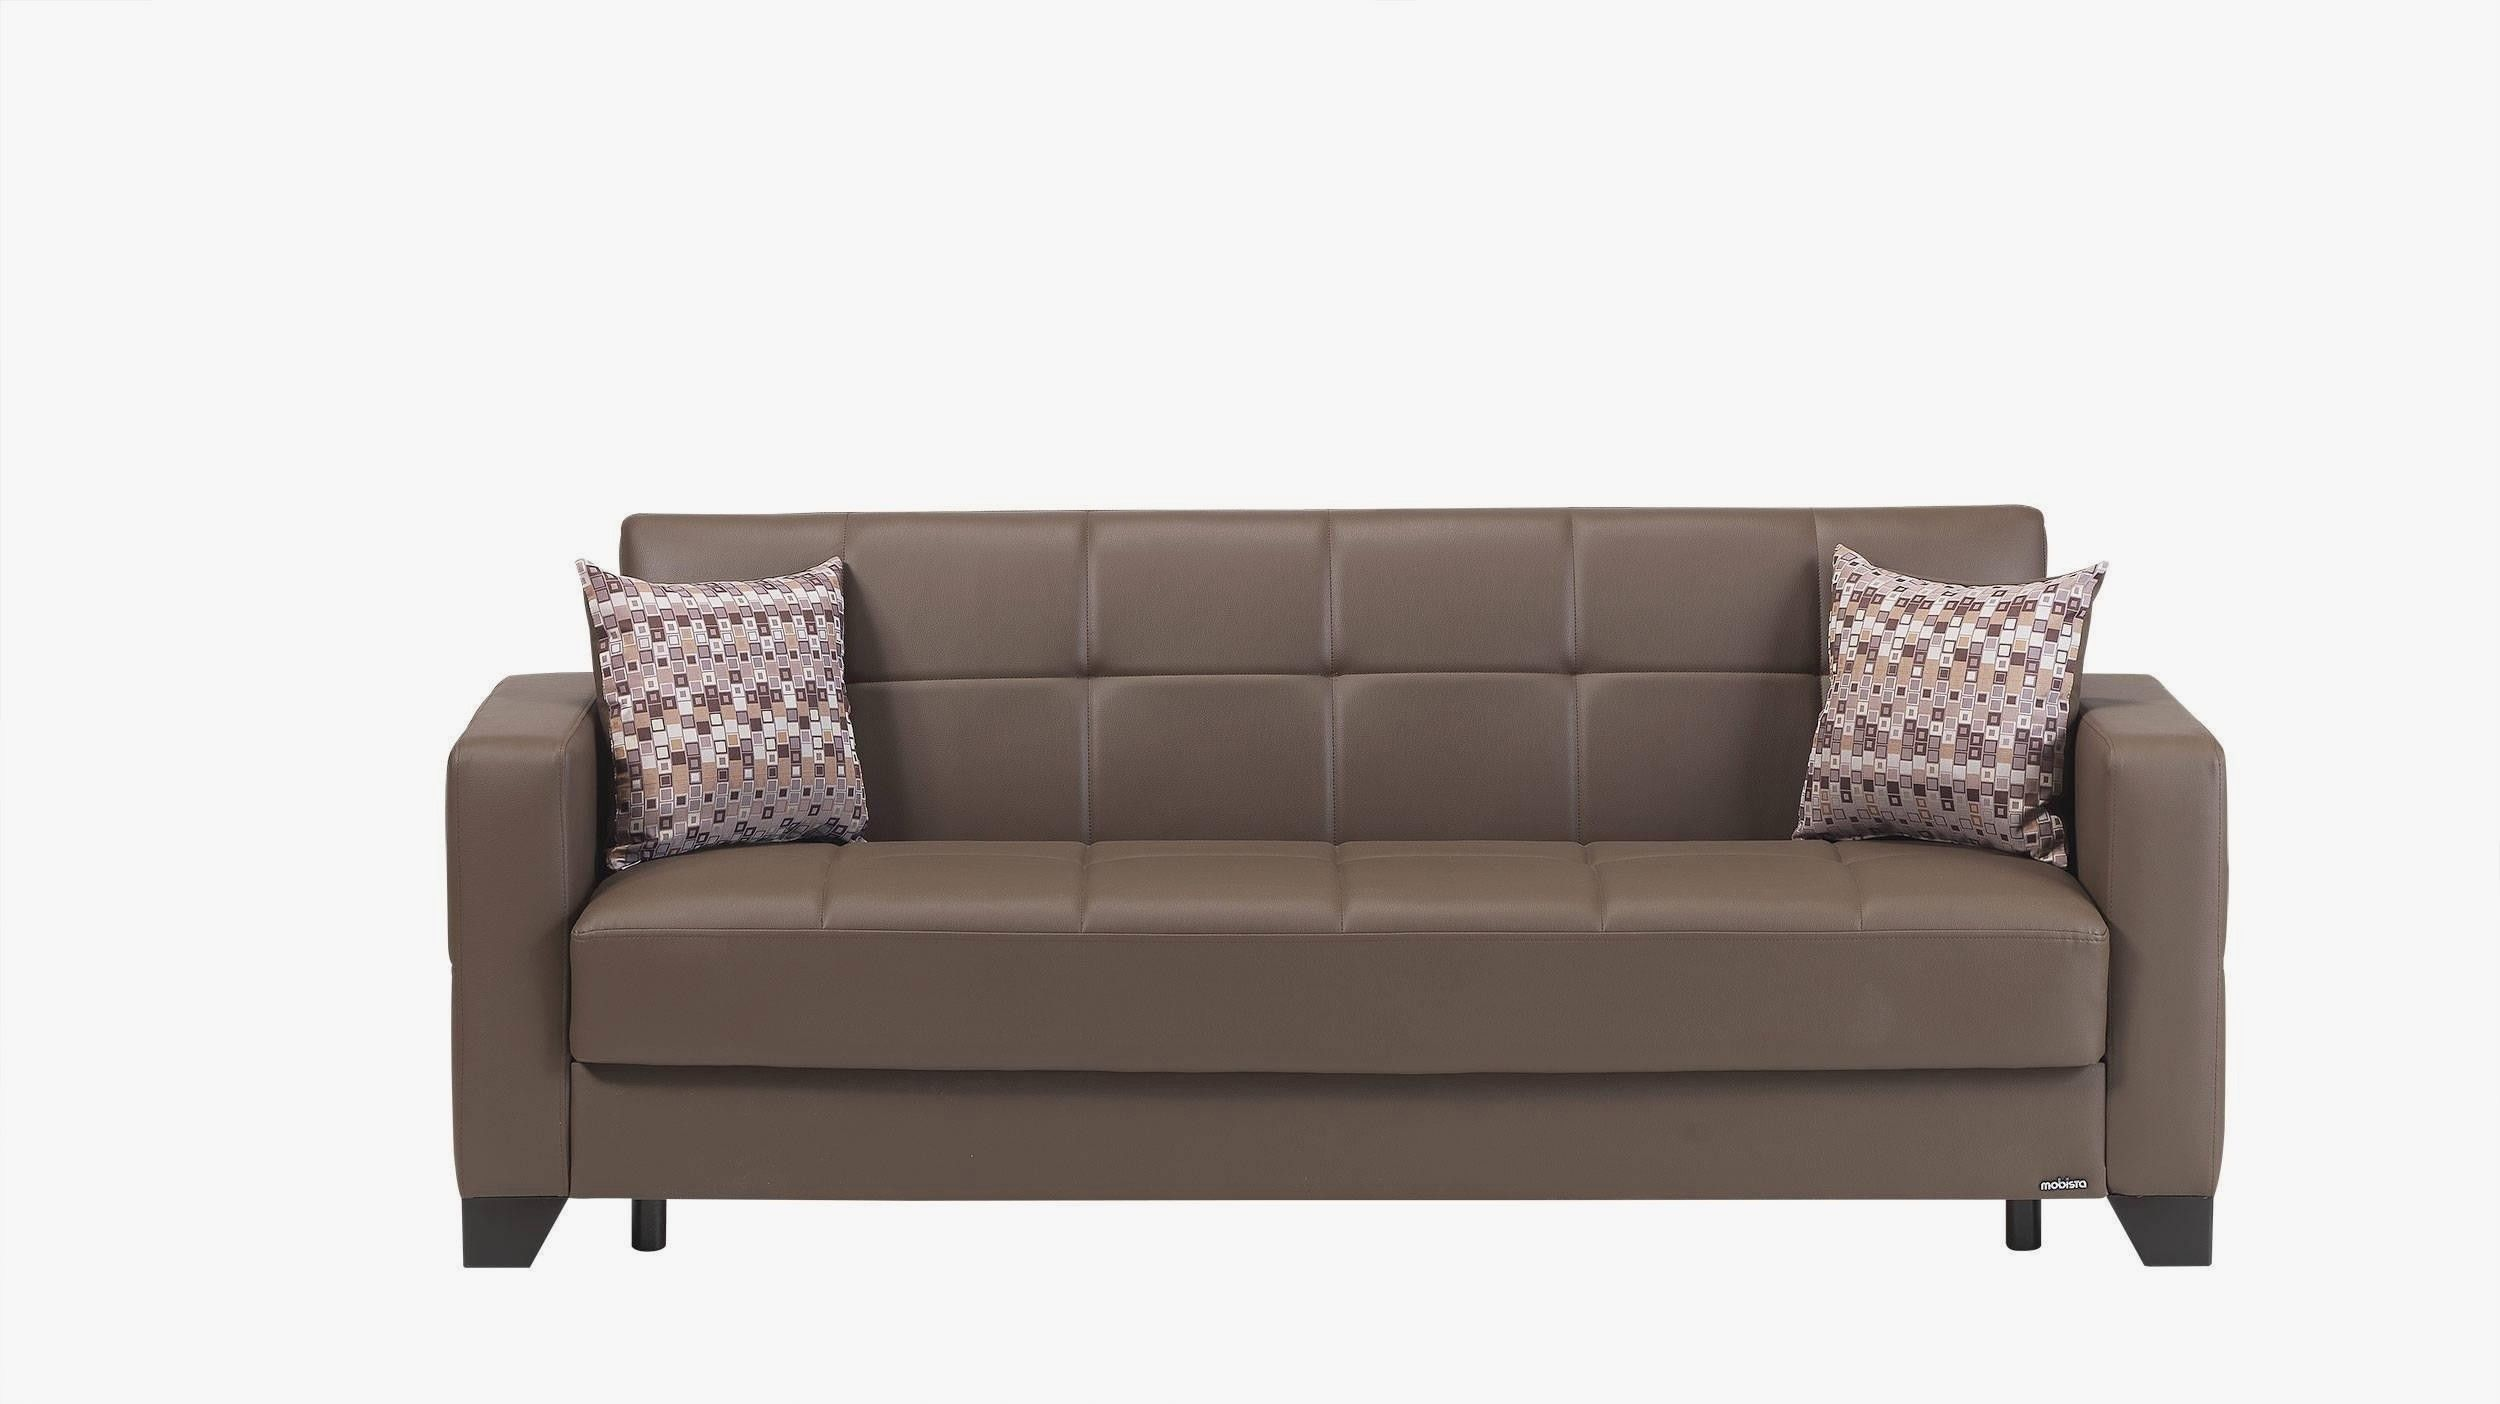 Full Size of 29 Best Of Extra Langes Sofa Mit Chaiselongue Lila Auf Raten Lagerverkauf Stilecht Relaxfunktion 3 Sitzer Chippendale Franz Fertig Alcantara 2 Polyrattan Sofa Langes Sofa